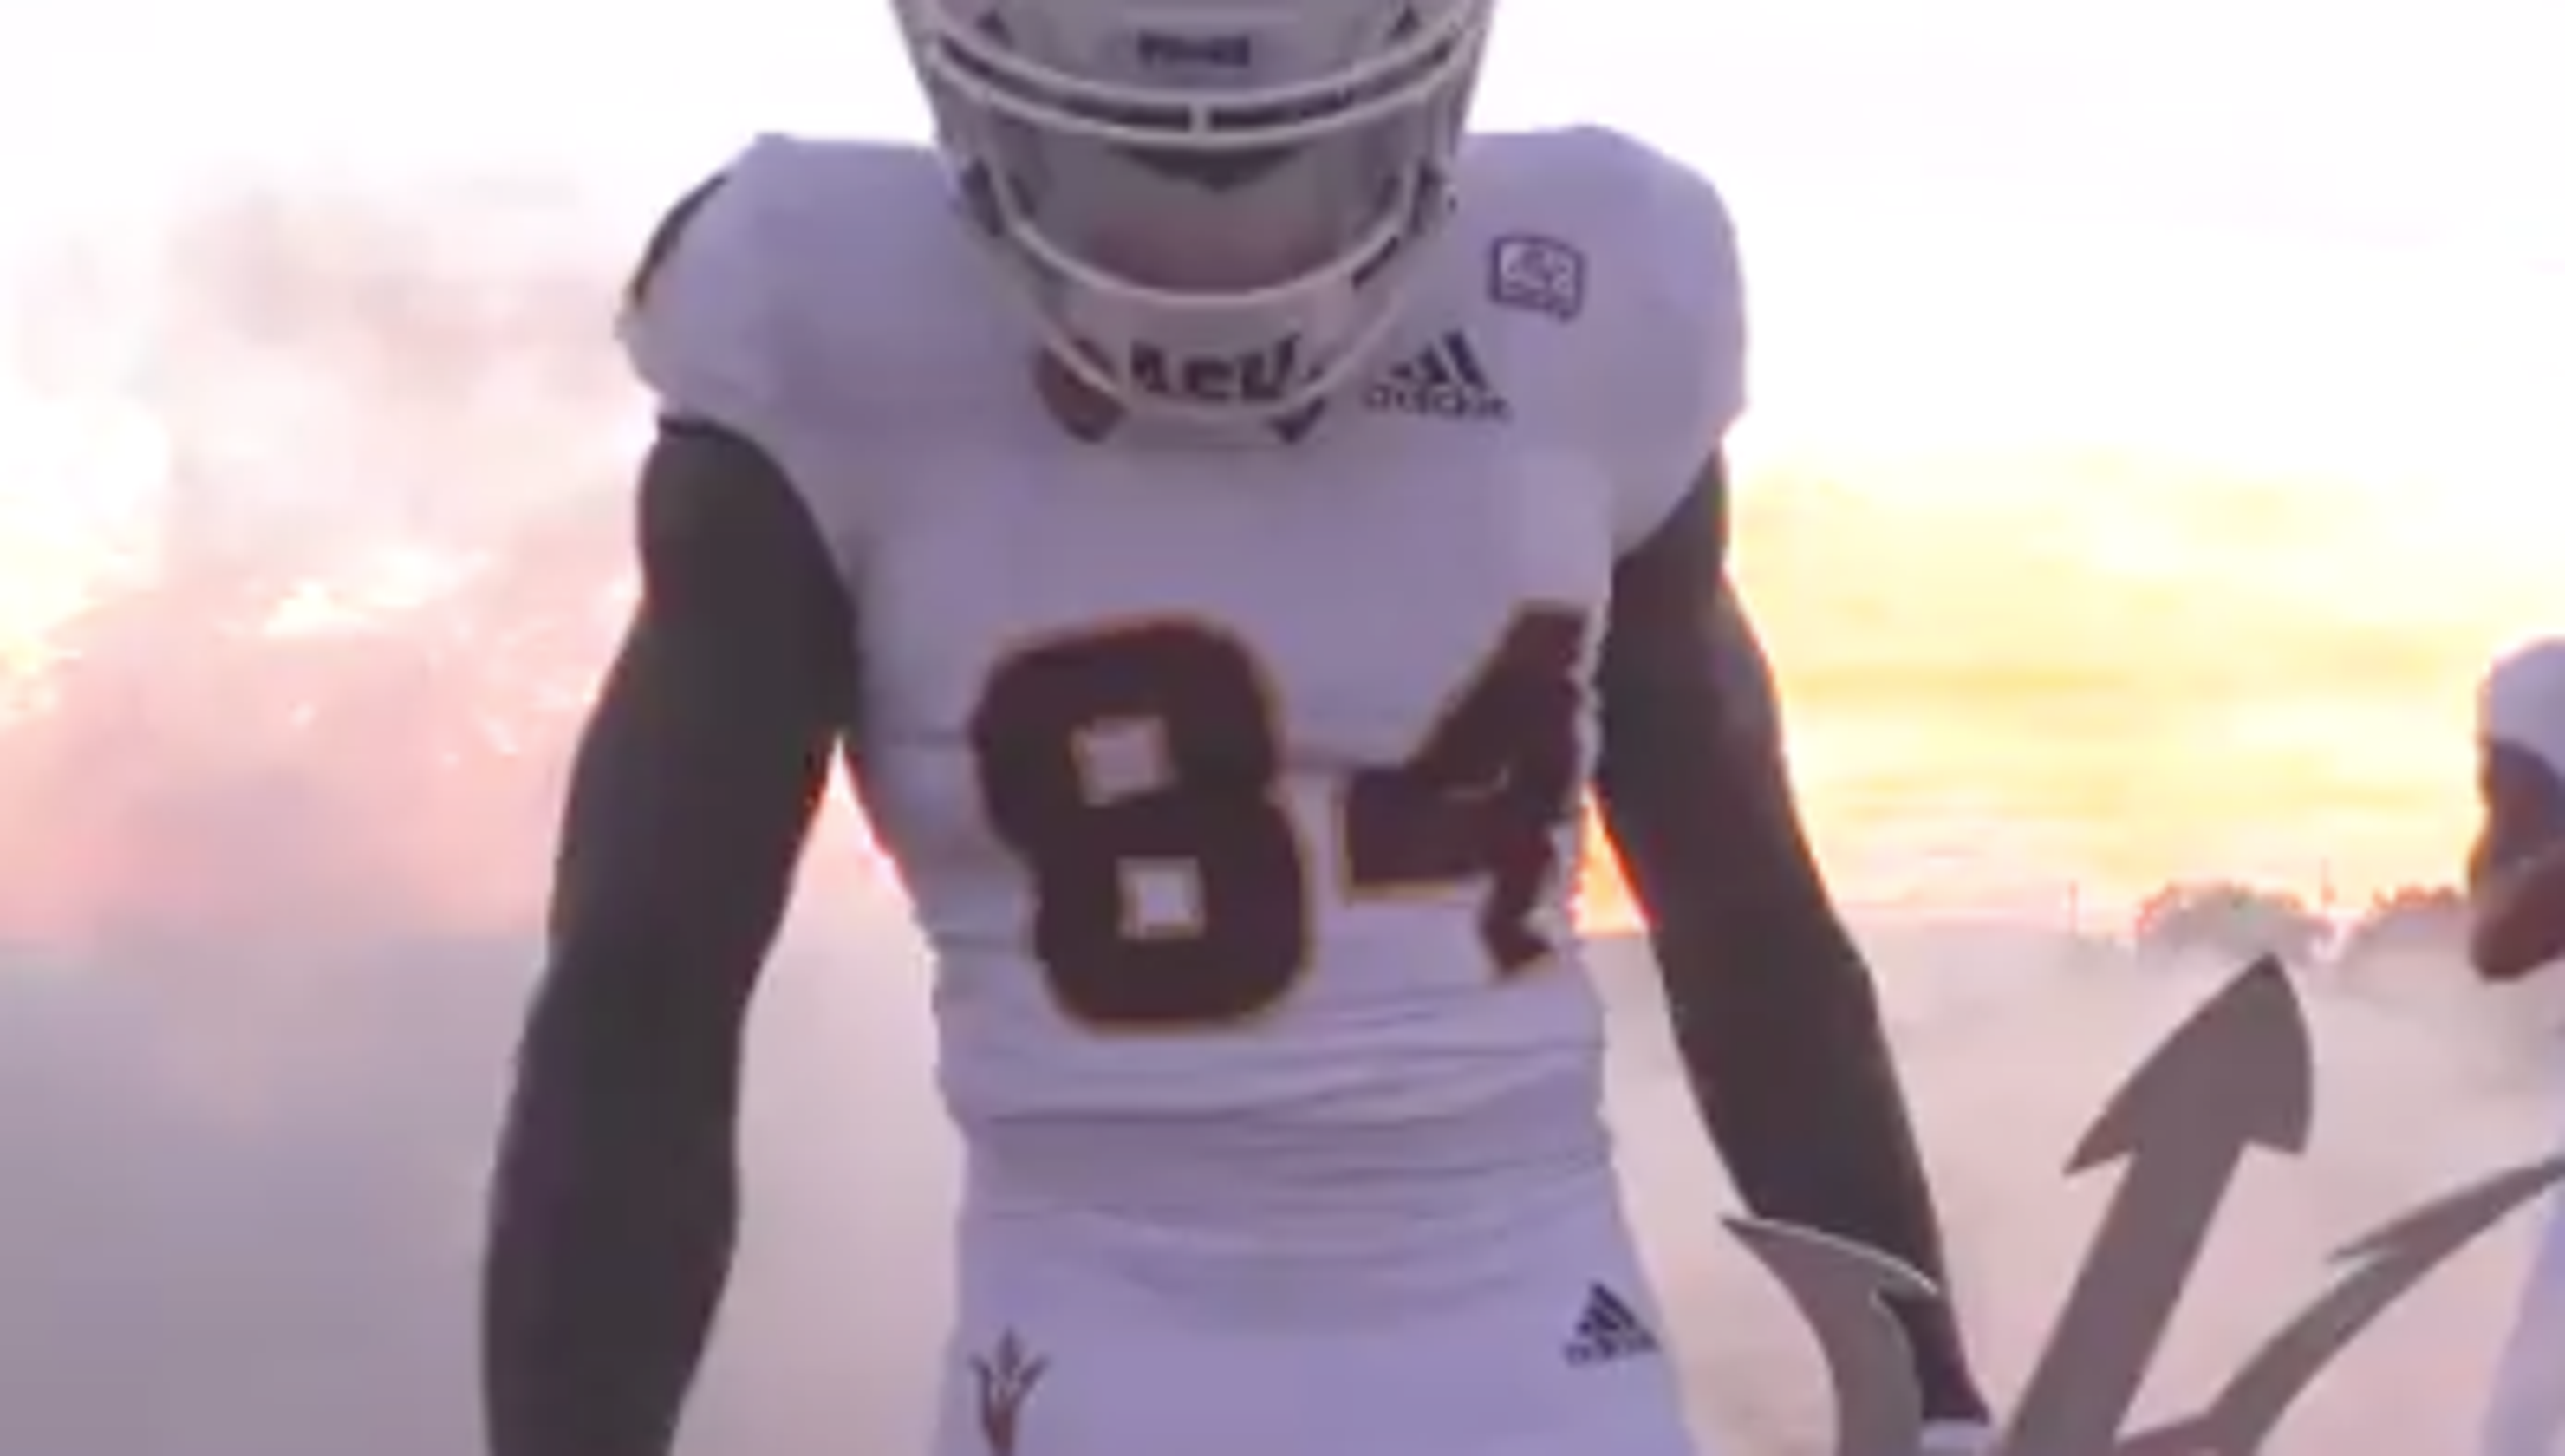 half off ac19b c736d ASU vs. Oregon uniforms: Sun Devils wearing white, Ducks in ...